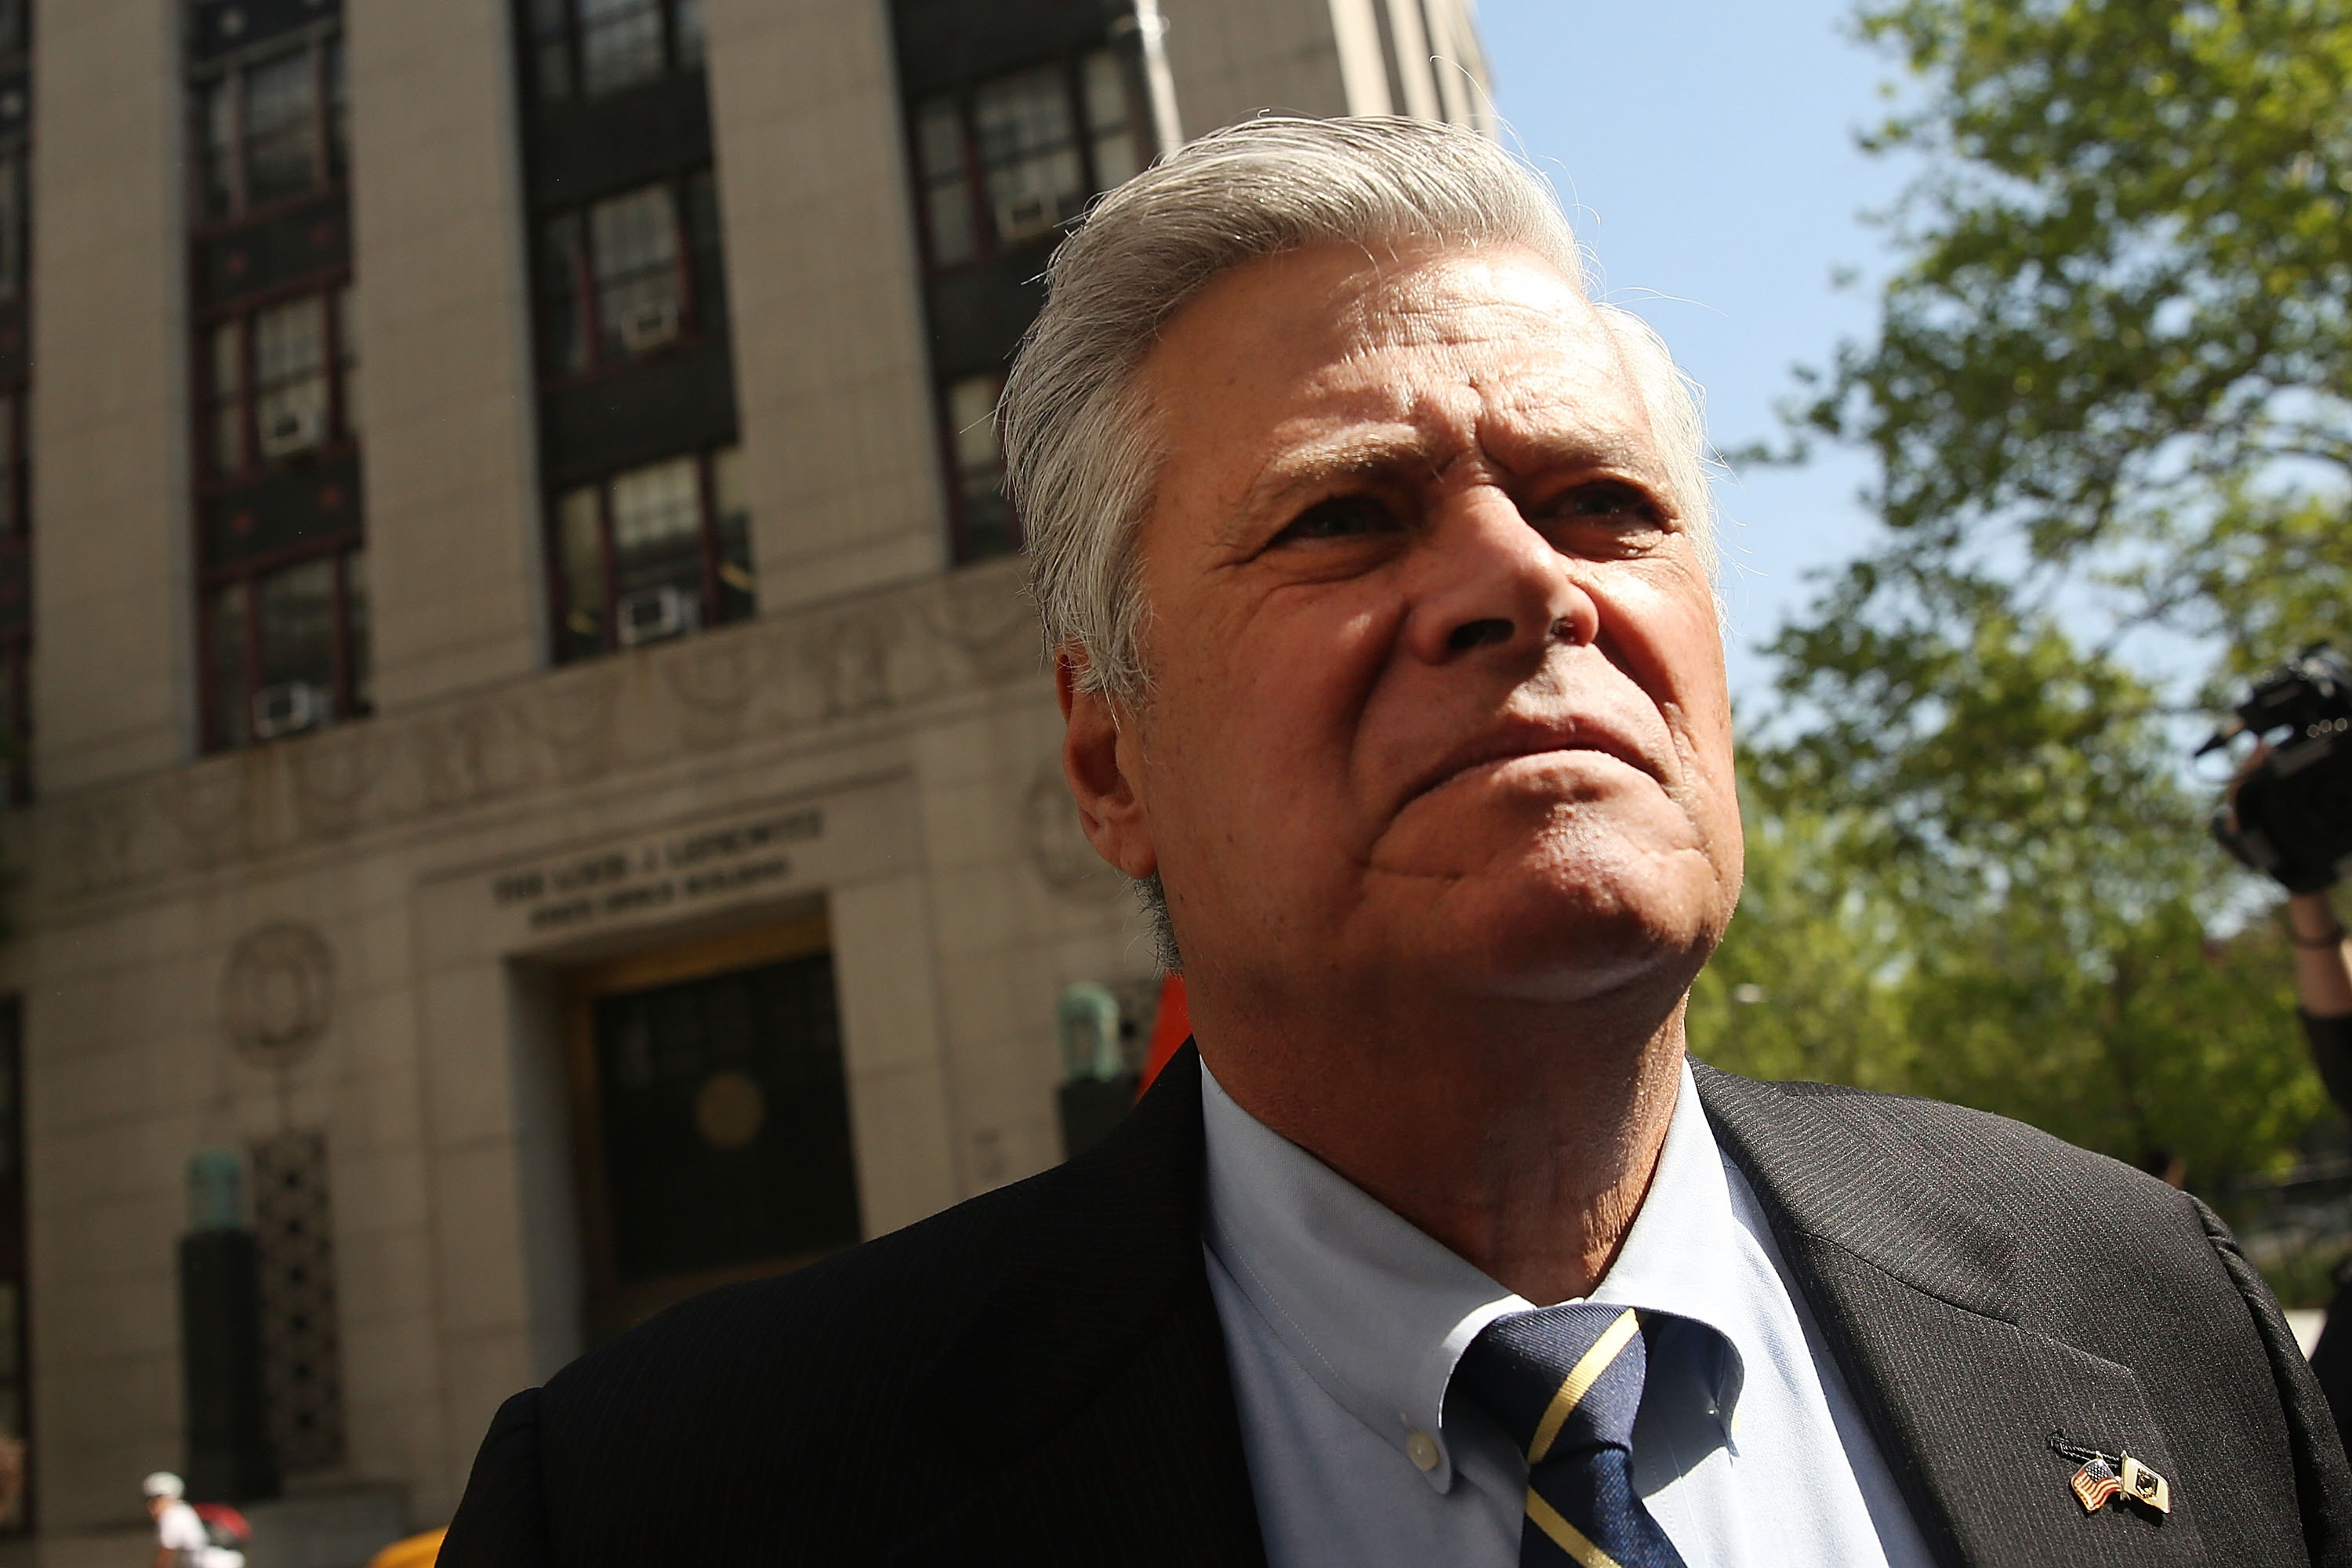 Former New York State Senate Majority Leader Dean Skelos walks into a Manhattan court for his sentencing Thursday in New York. (Getty Images)